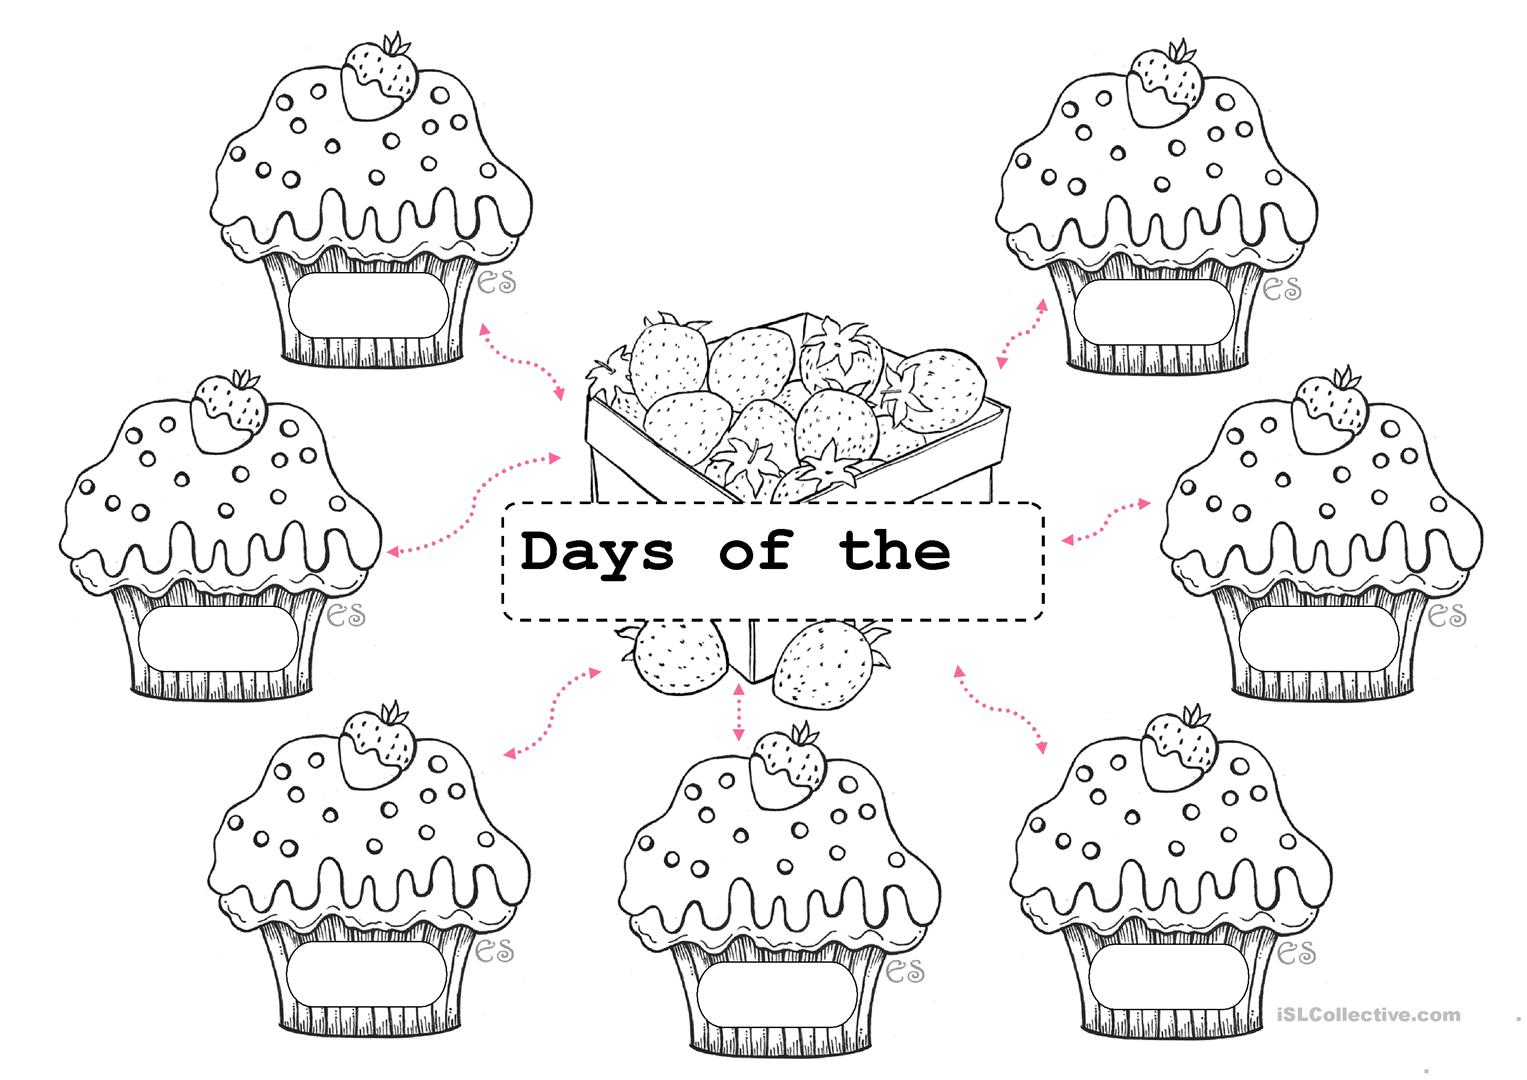 Days Of The Week Mapping Worksheet